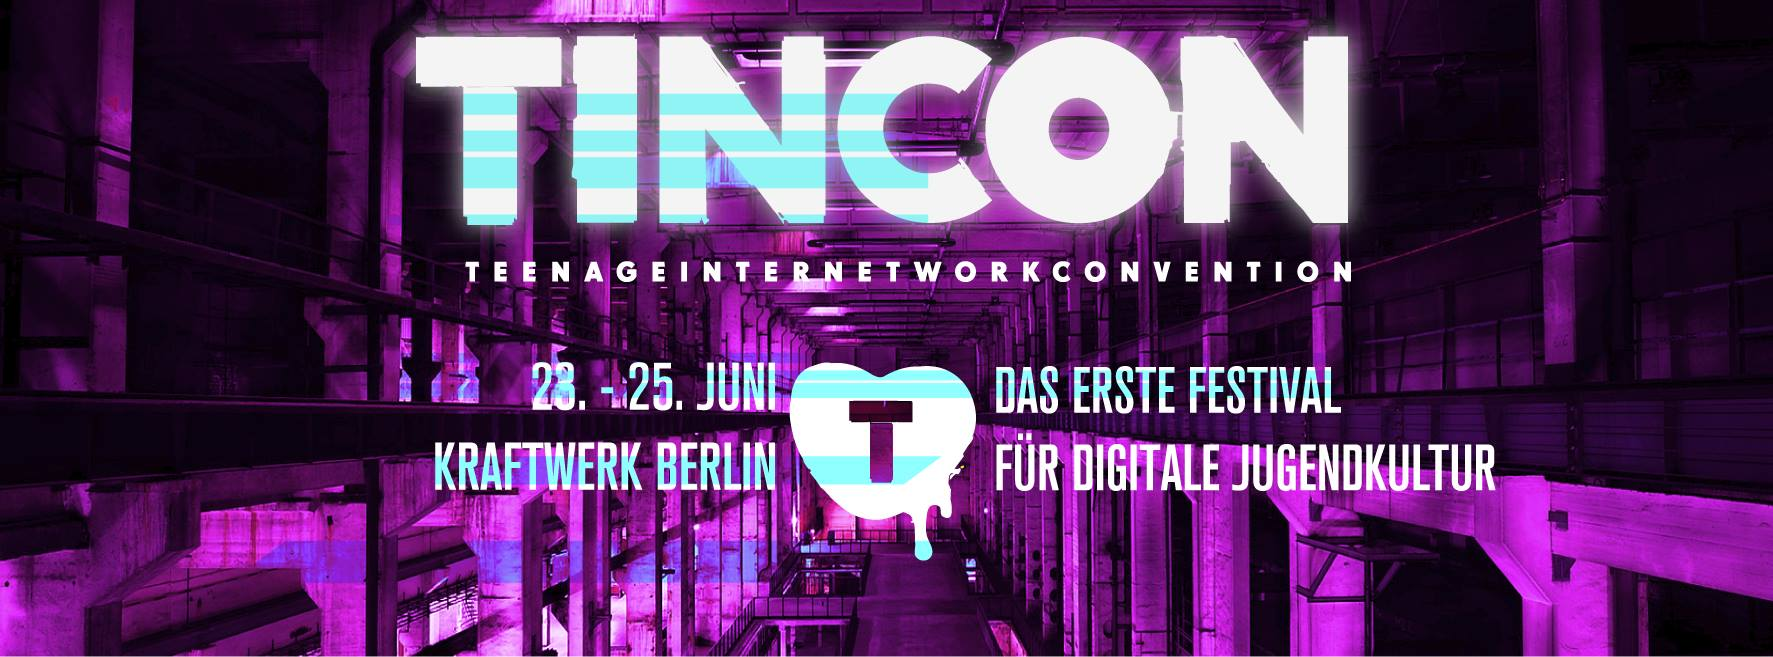 TINCON – teenageinternetwork convention 2017